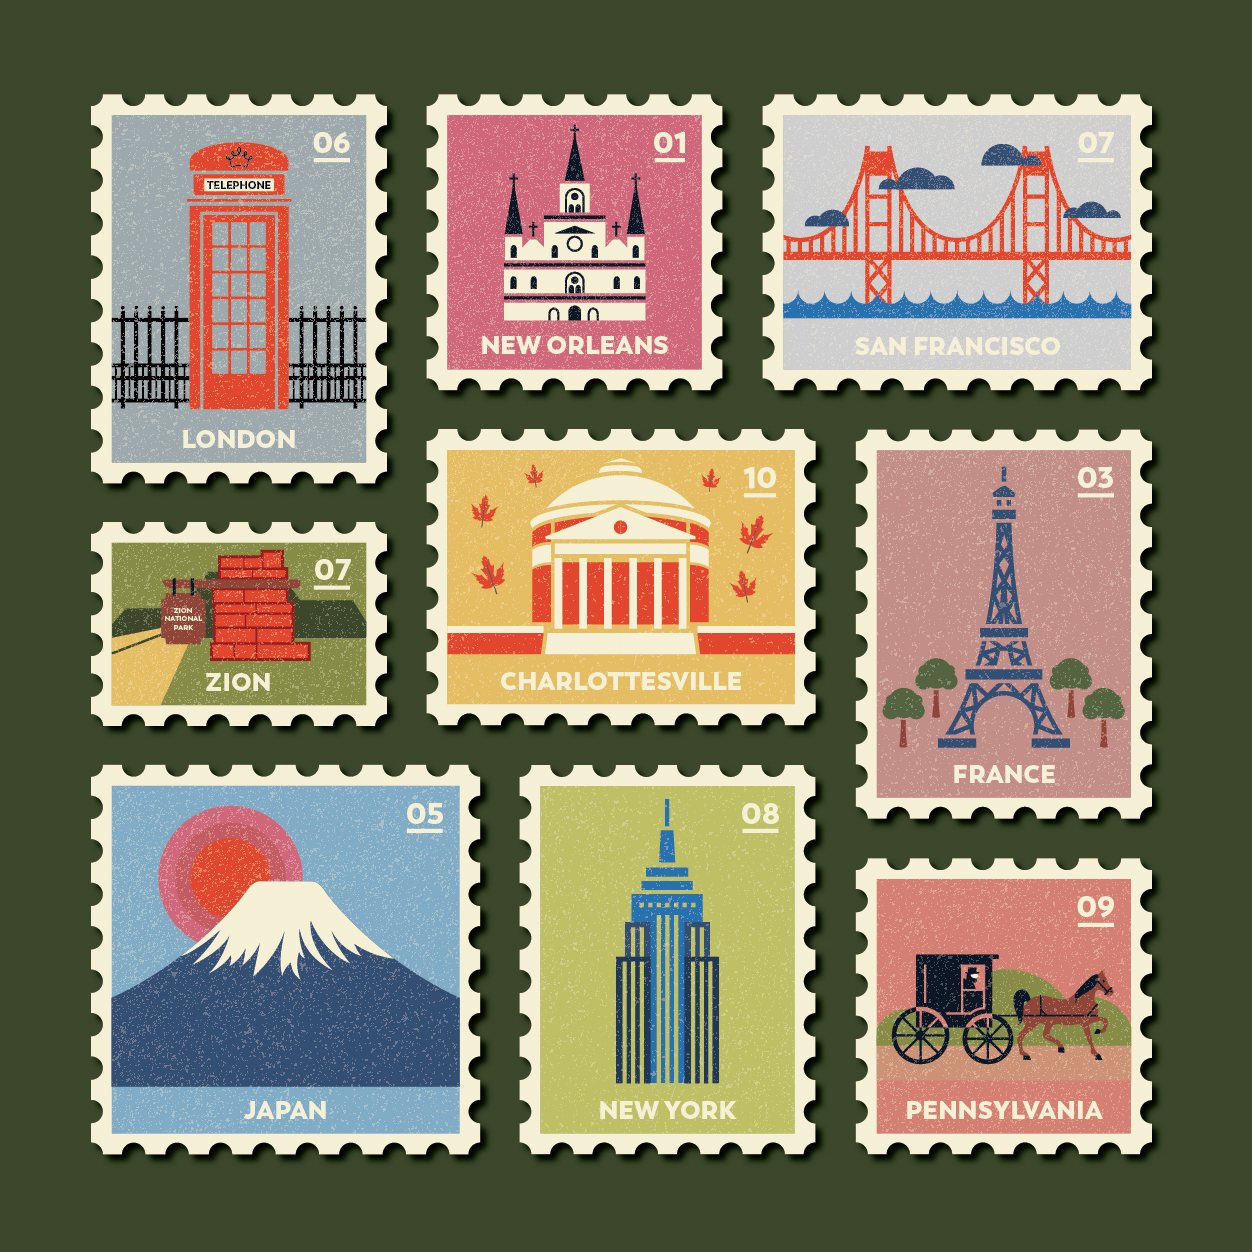 postage stamp illustration.jpg